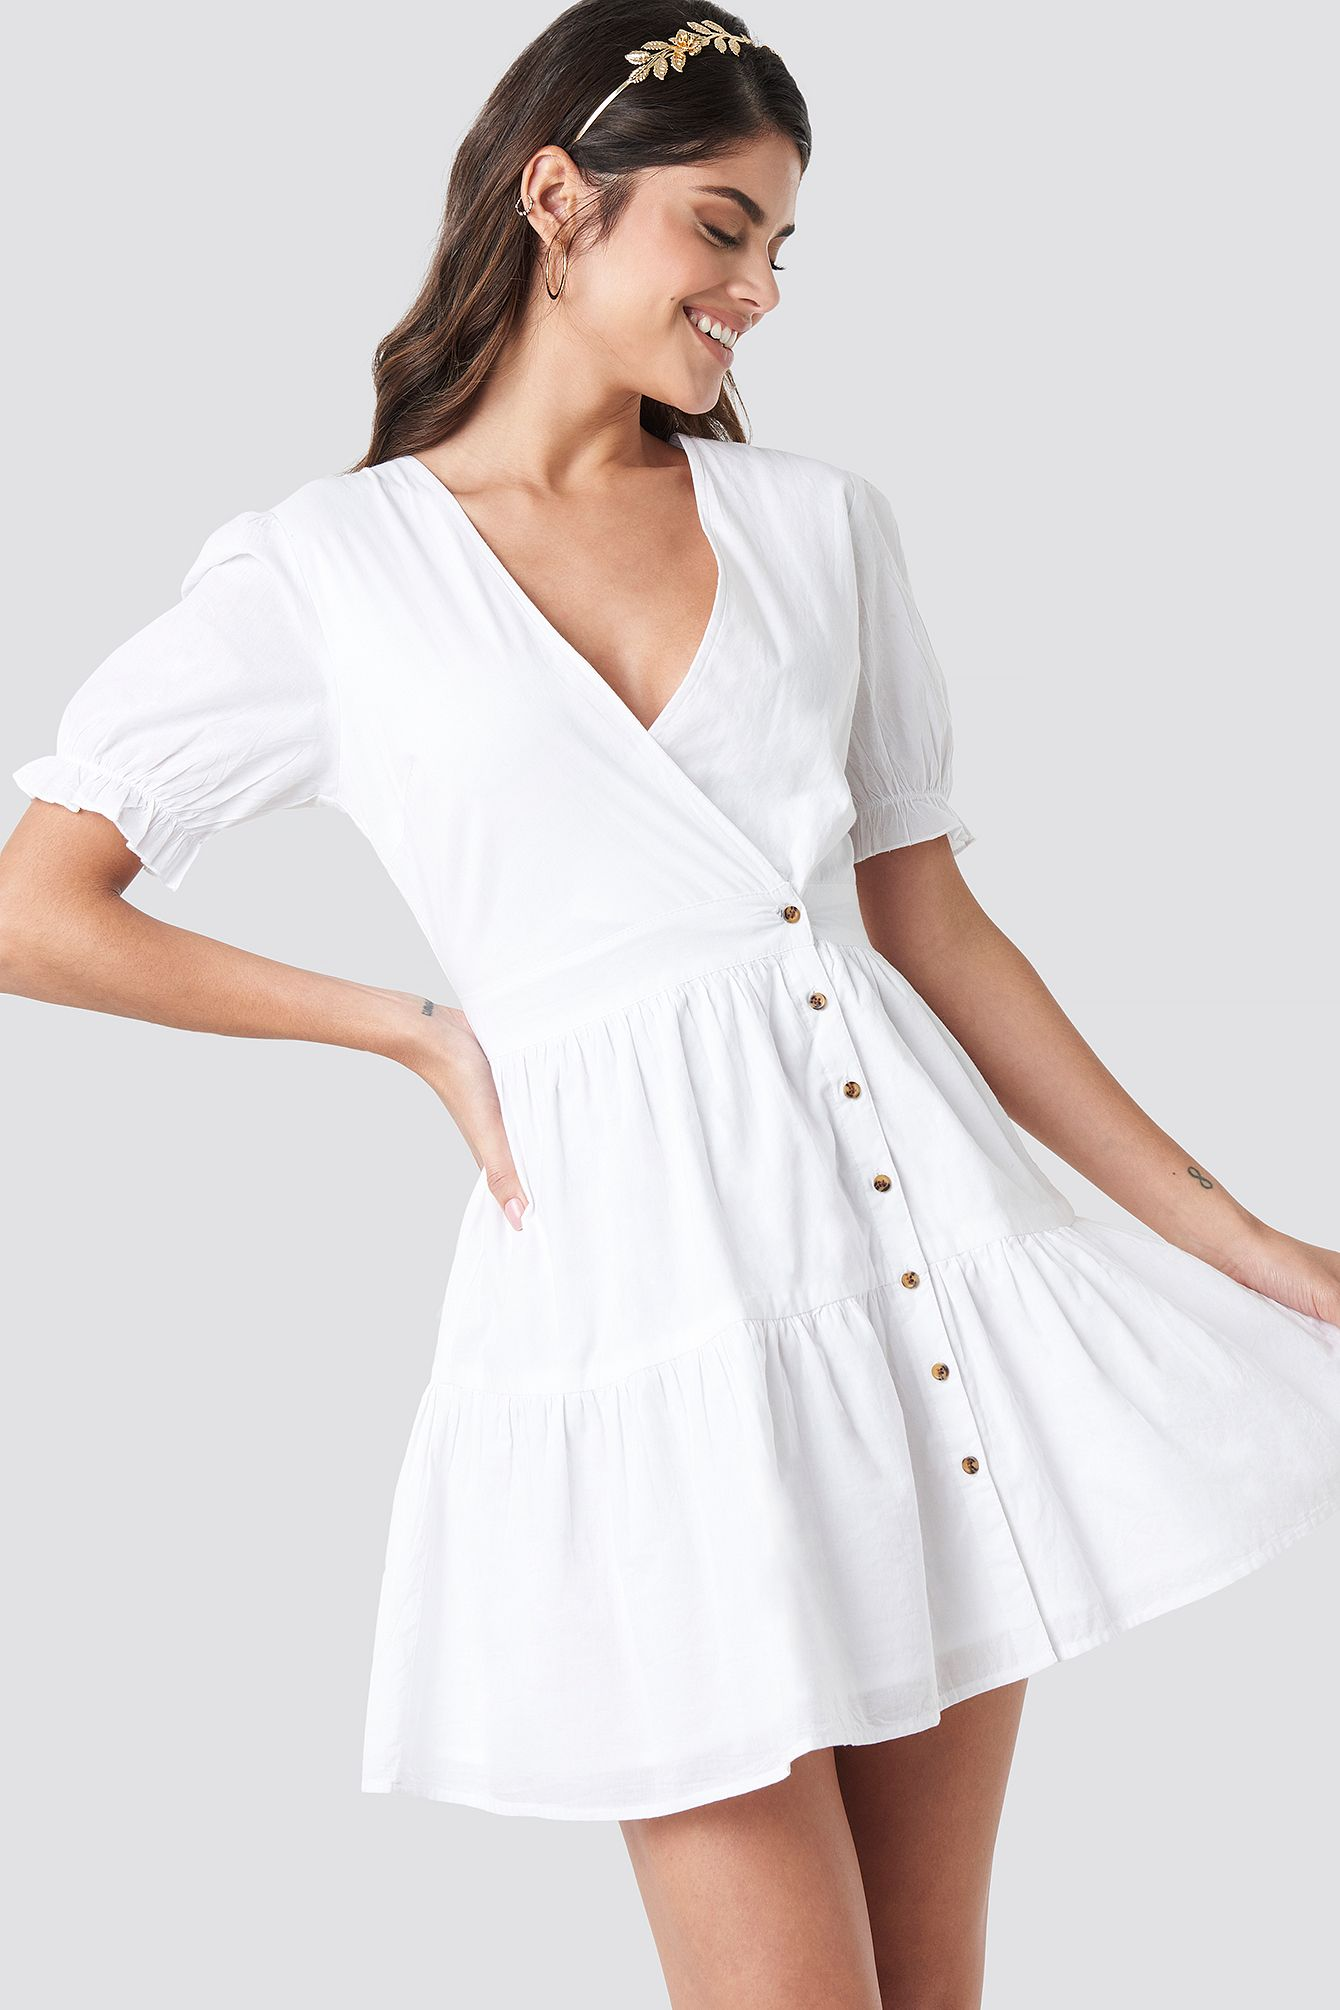 Wrap Front Puff Sleeve Button Dress White Dresses Button Dress White Dress [ 2010 x 1340 Pixel ]